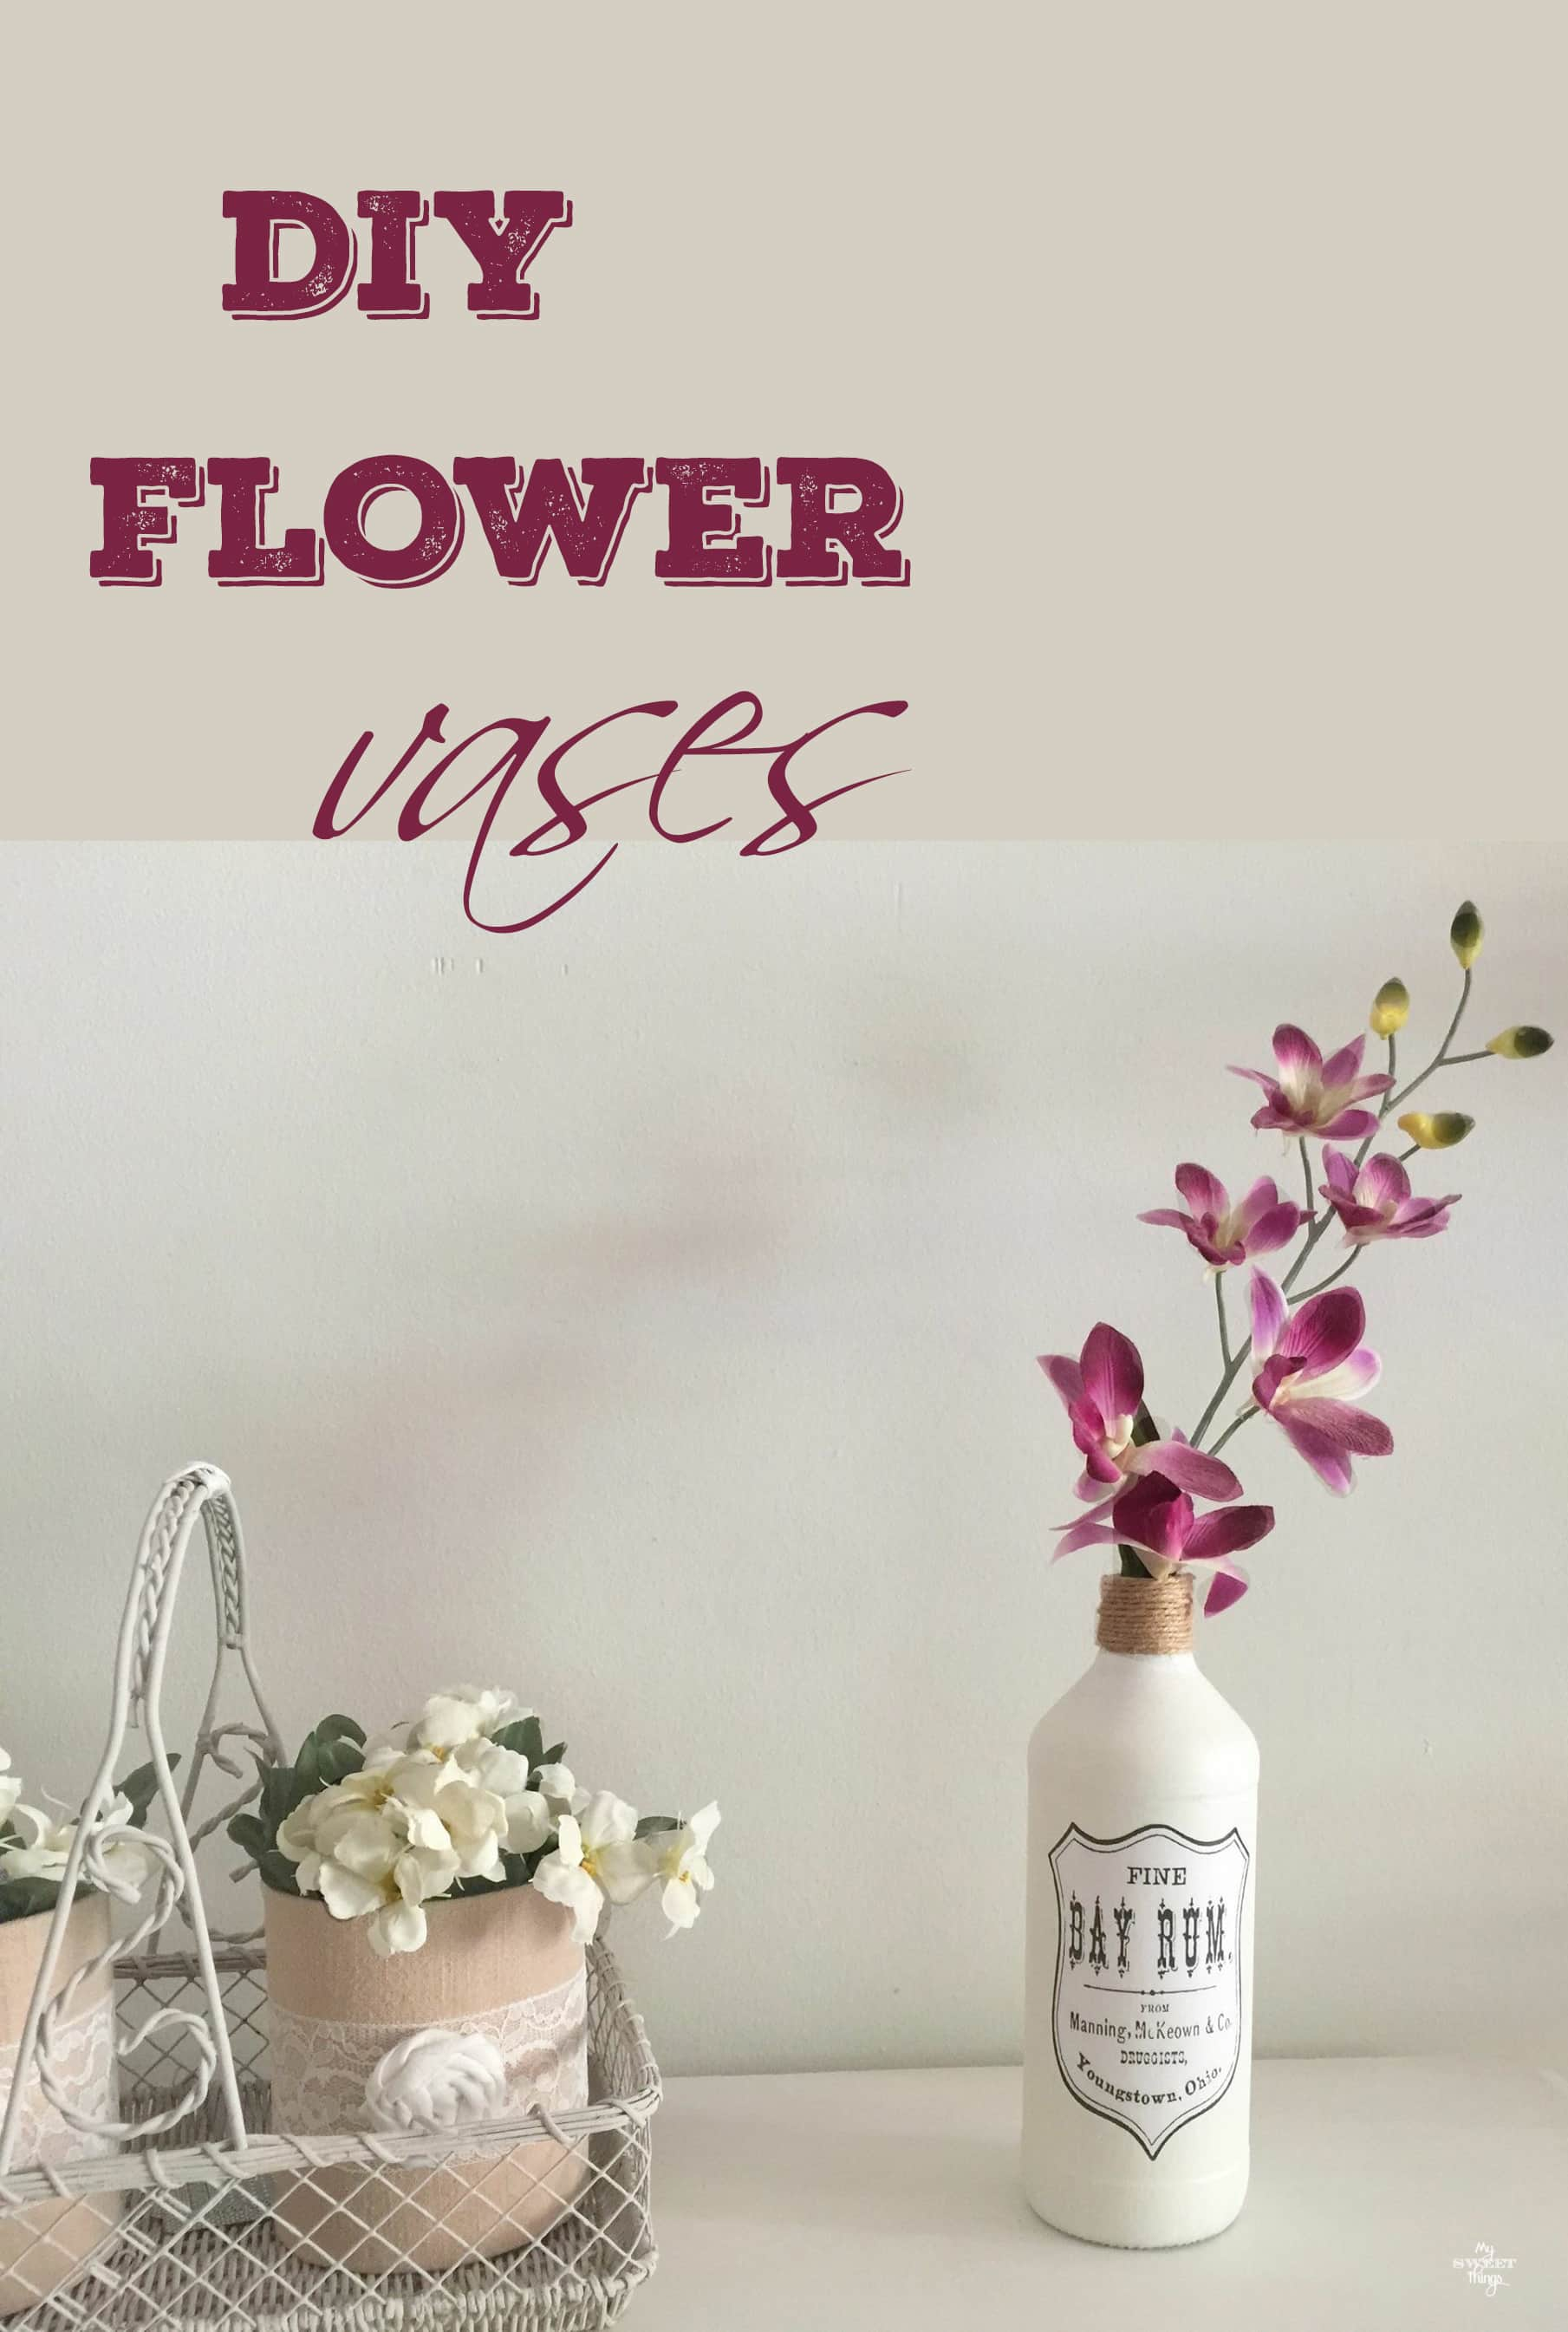 DIY Flower Vases